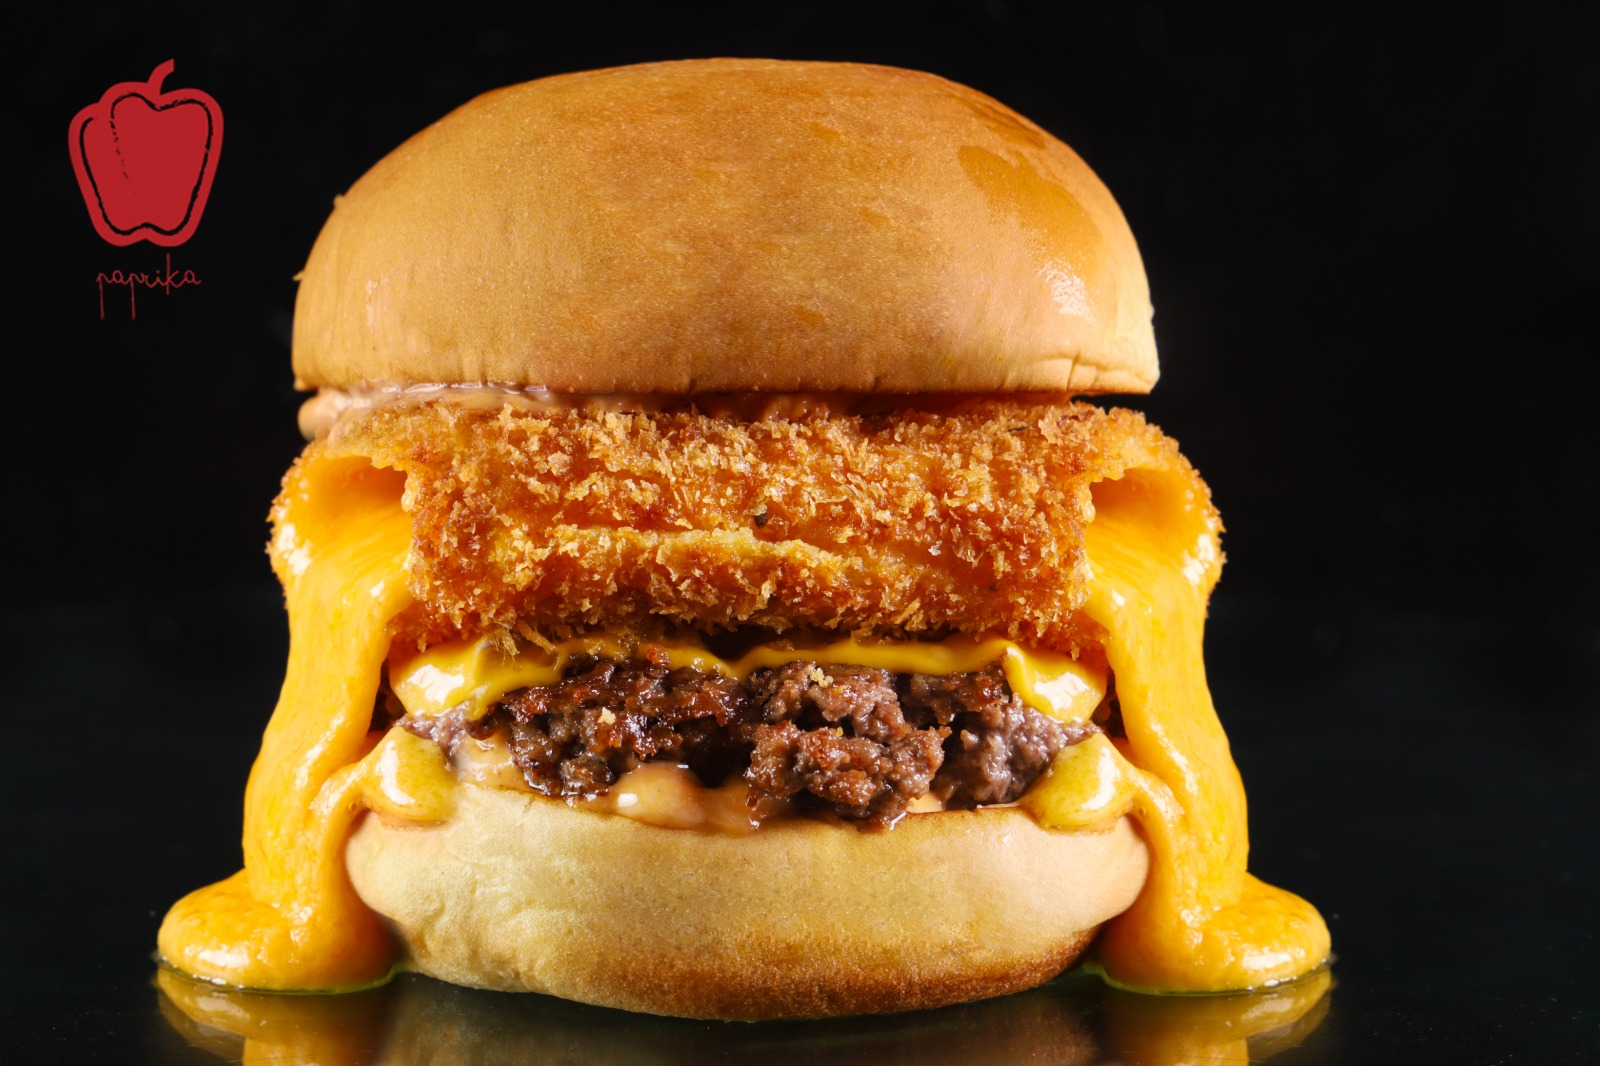 Who is the best burger restaurant in Qatar?